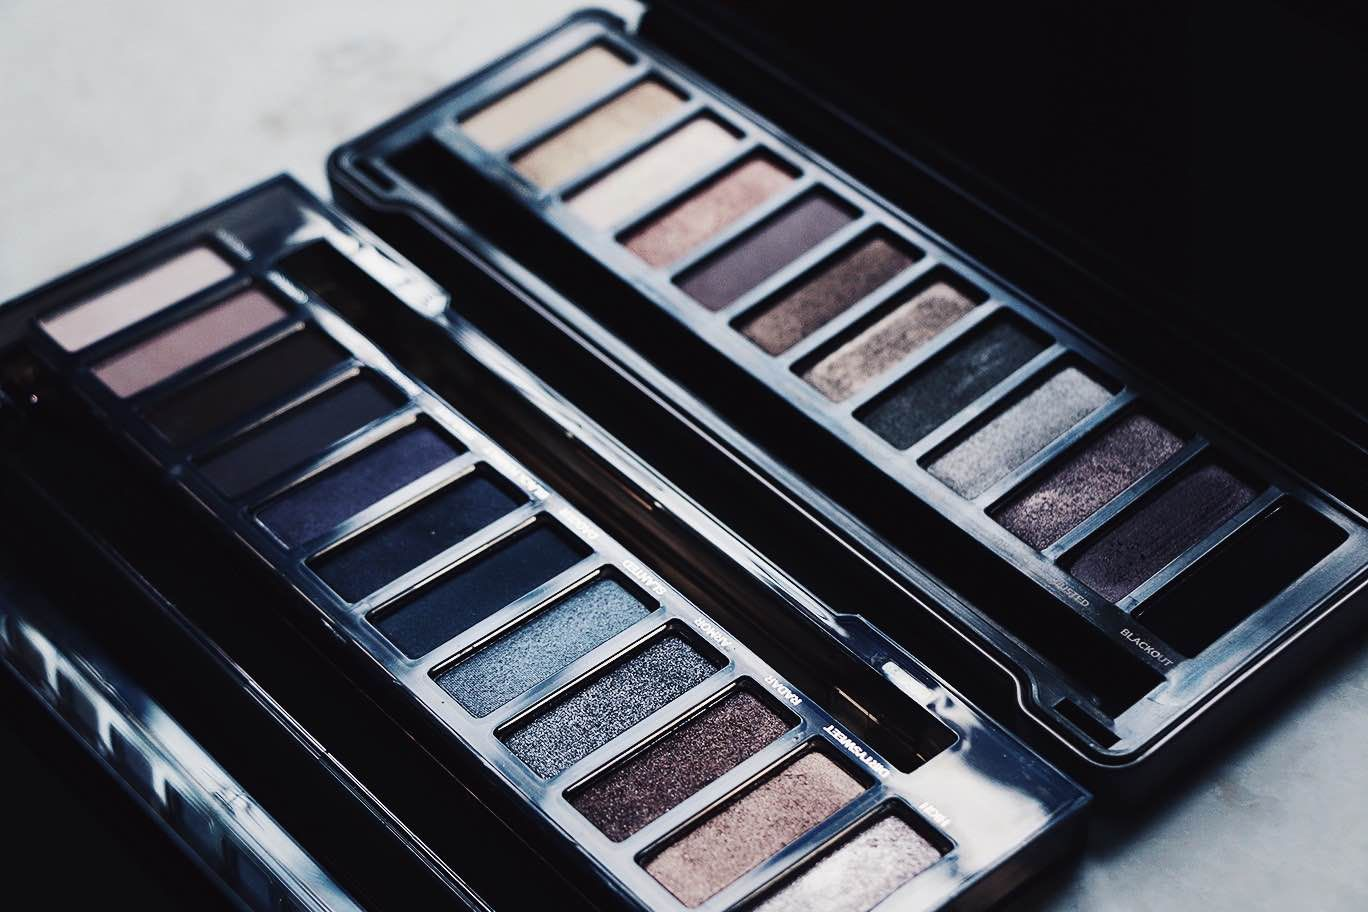 Urban Decay Naked Eyeshadow Palettes.